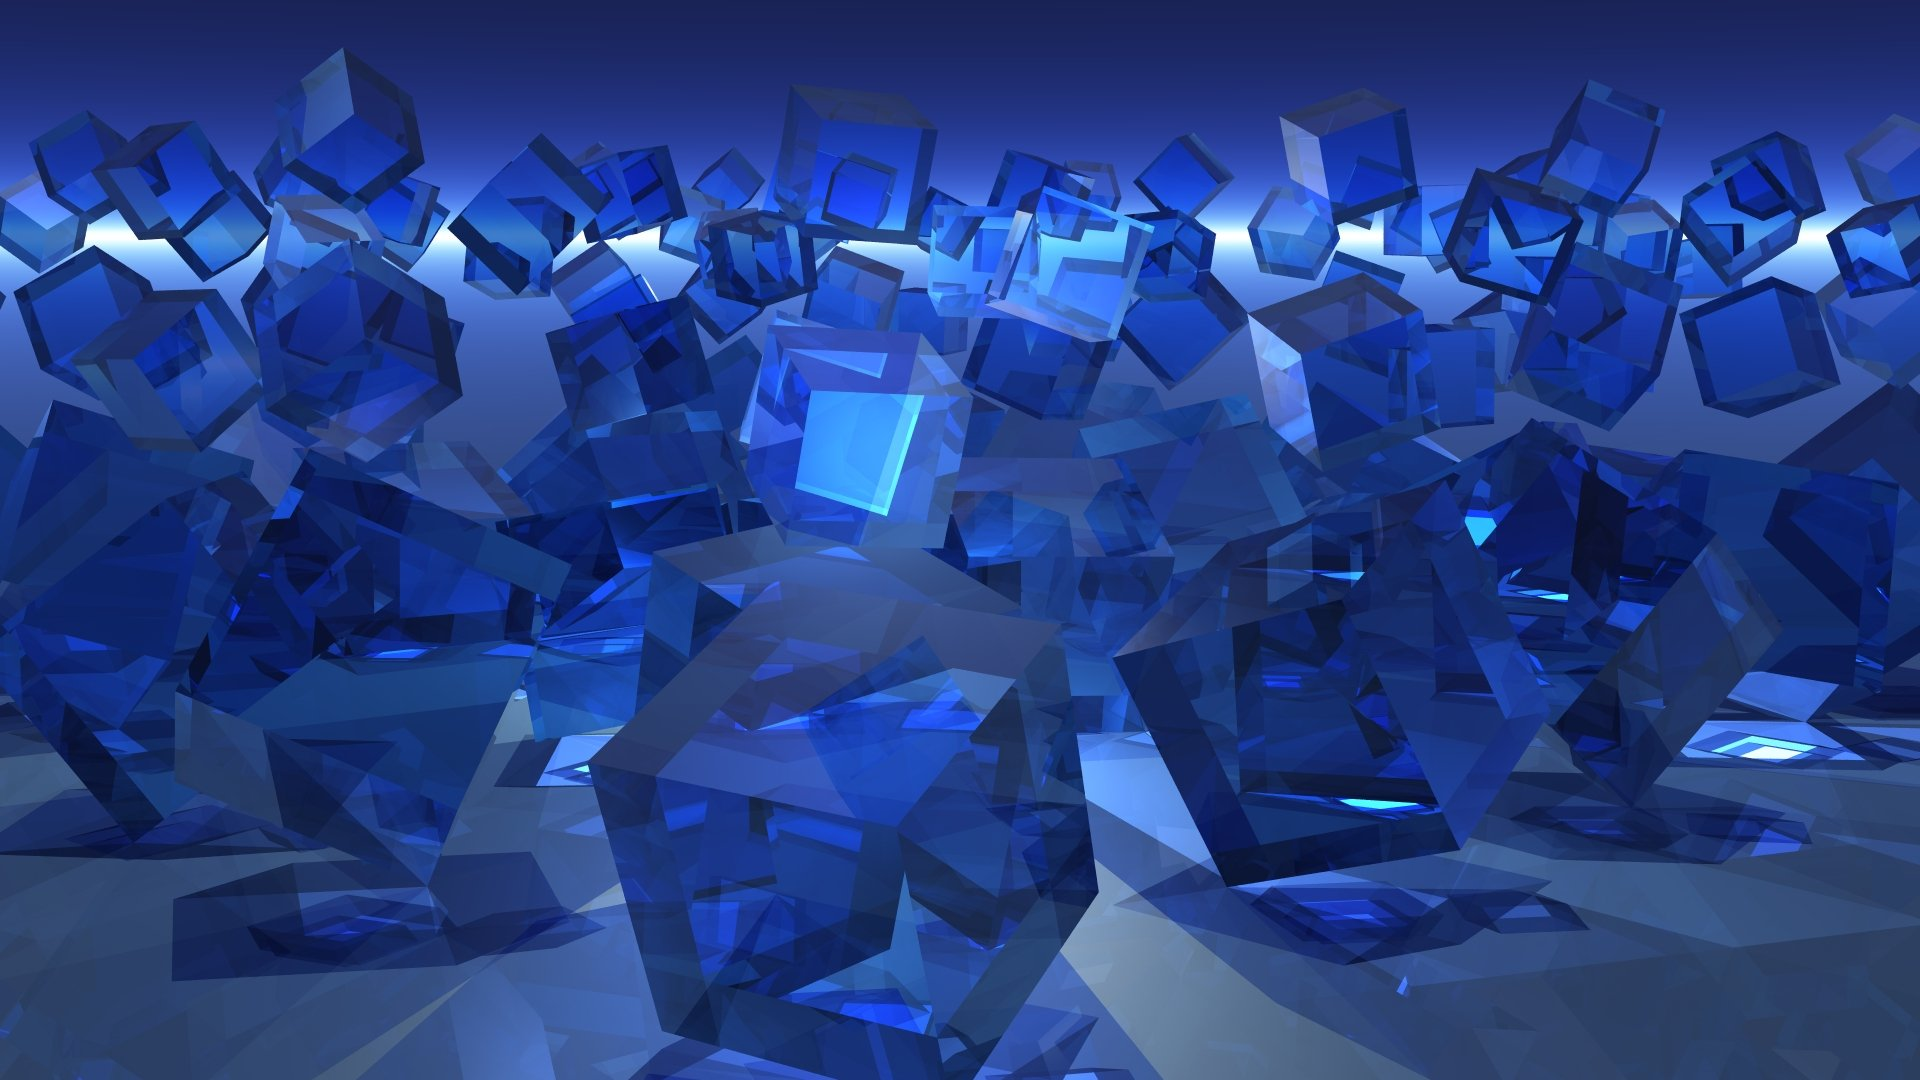 Cubes by Topas2012